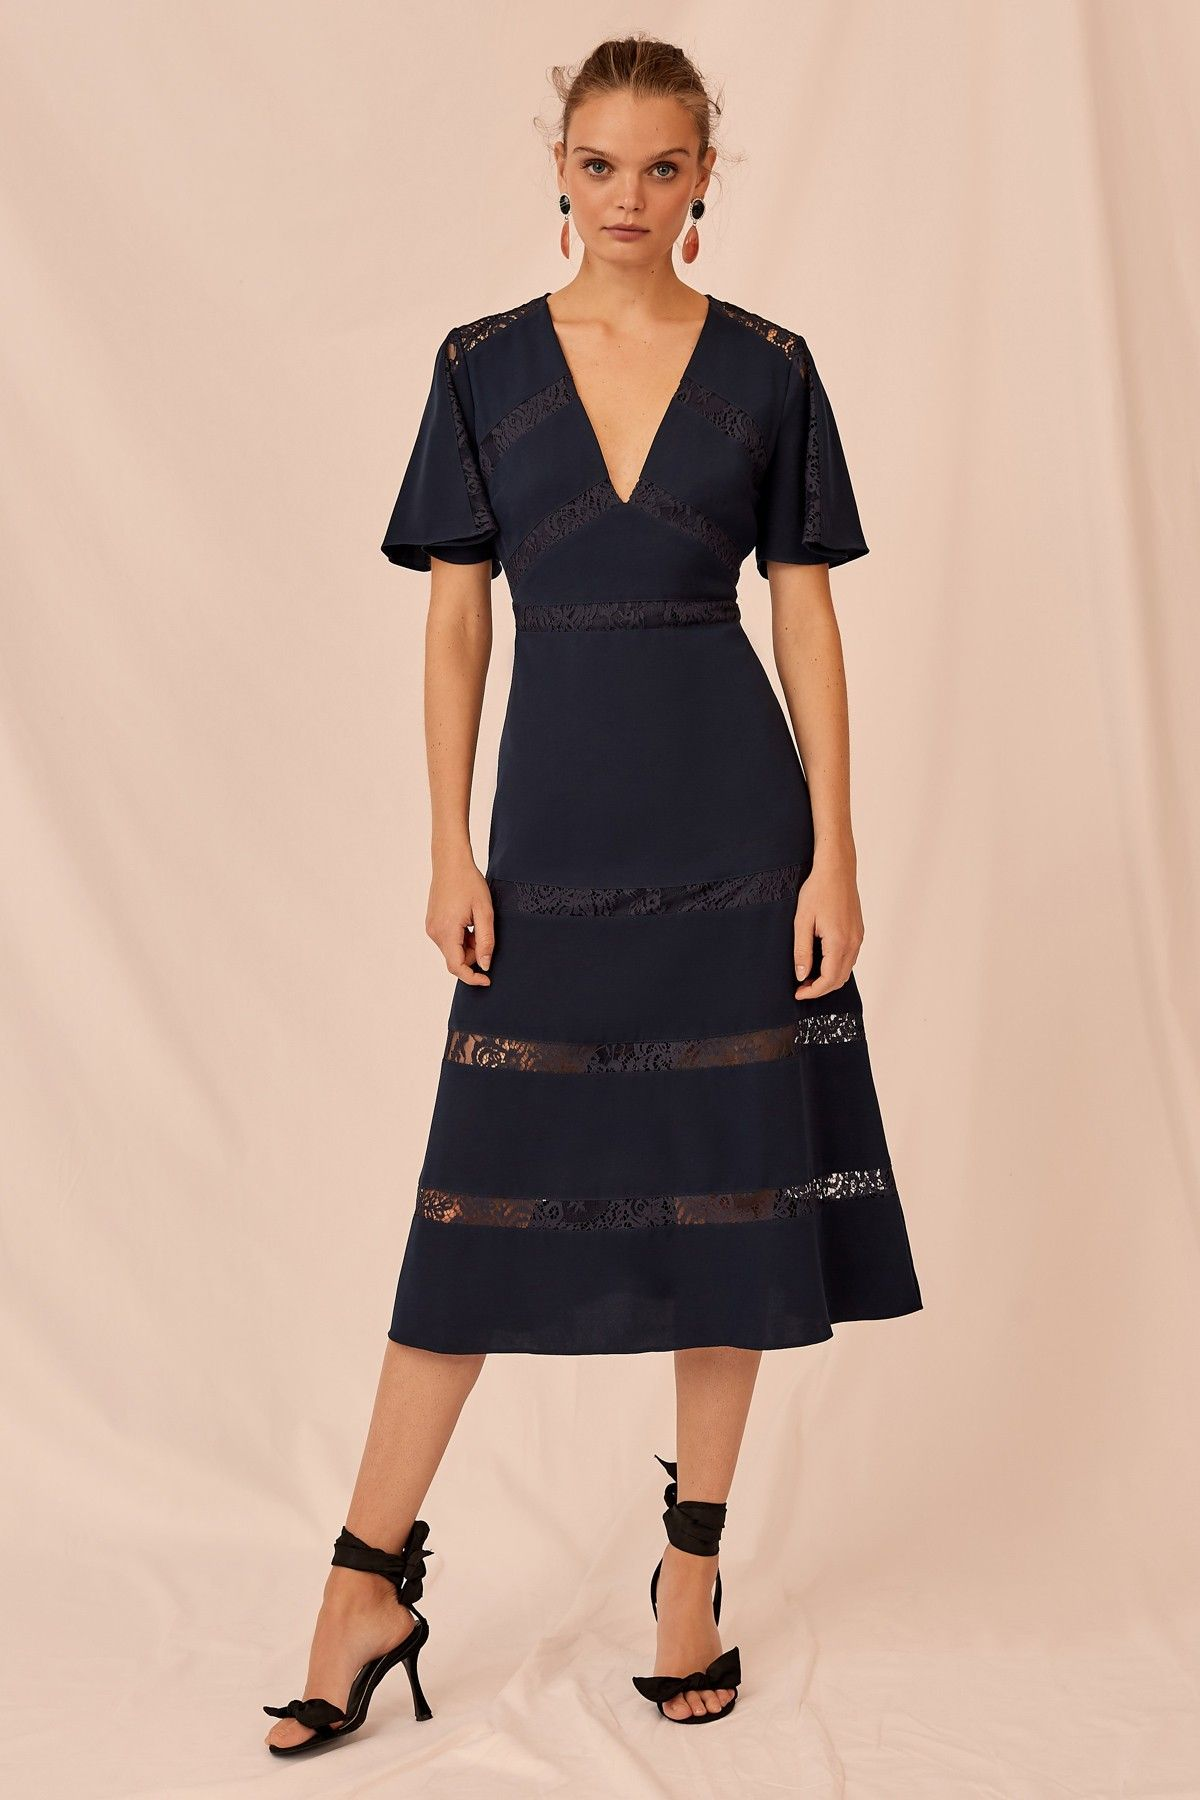 Sense Midi Dress Navy Keepsake Bnkr Navy Midi Dress Buy Midi Dress Midi Dress